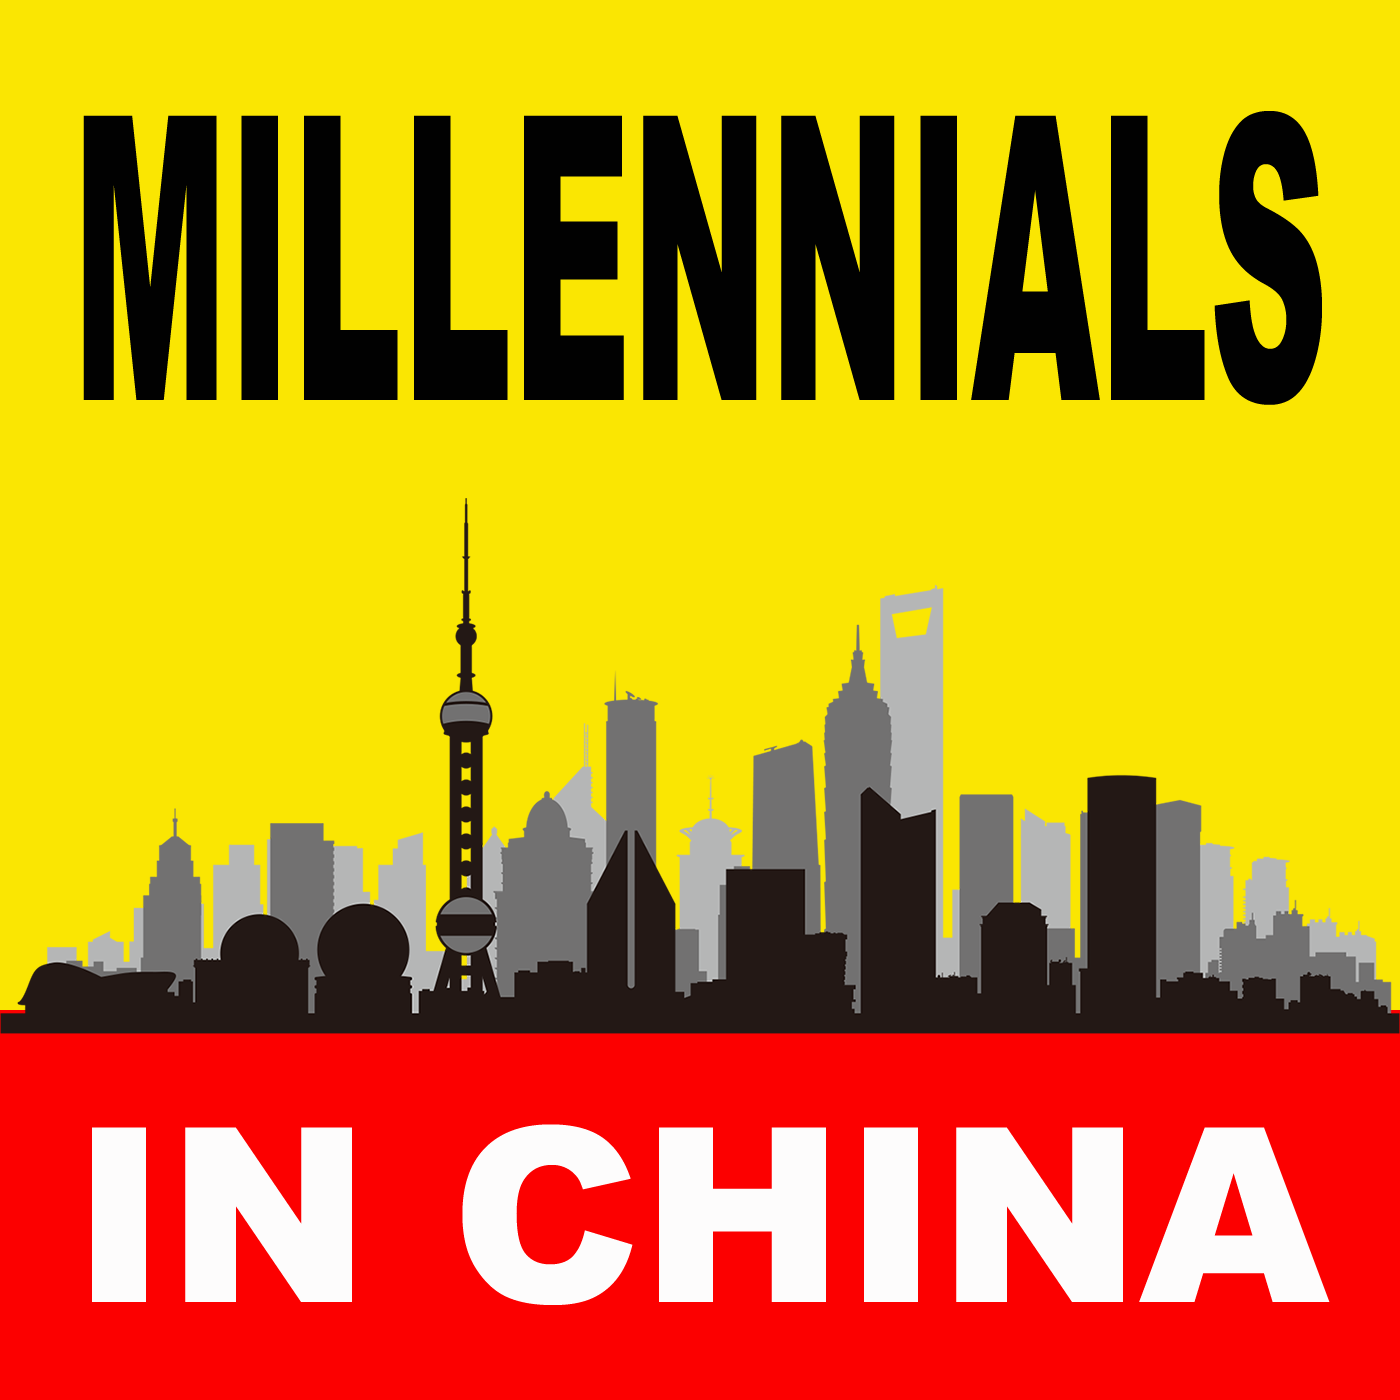 EP24: Chengdu's Startup-Friendly Environment, Organizational Culture, and Working at Alibaba ft. Daisy Peak